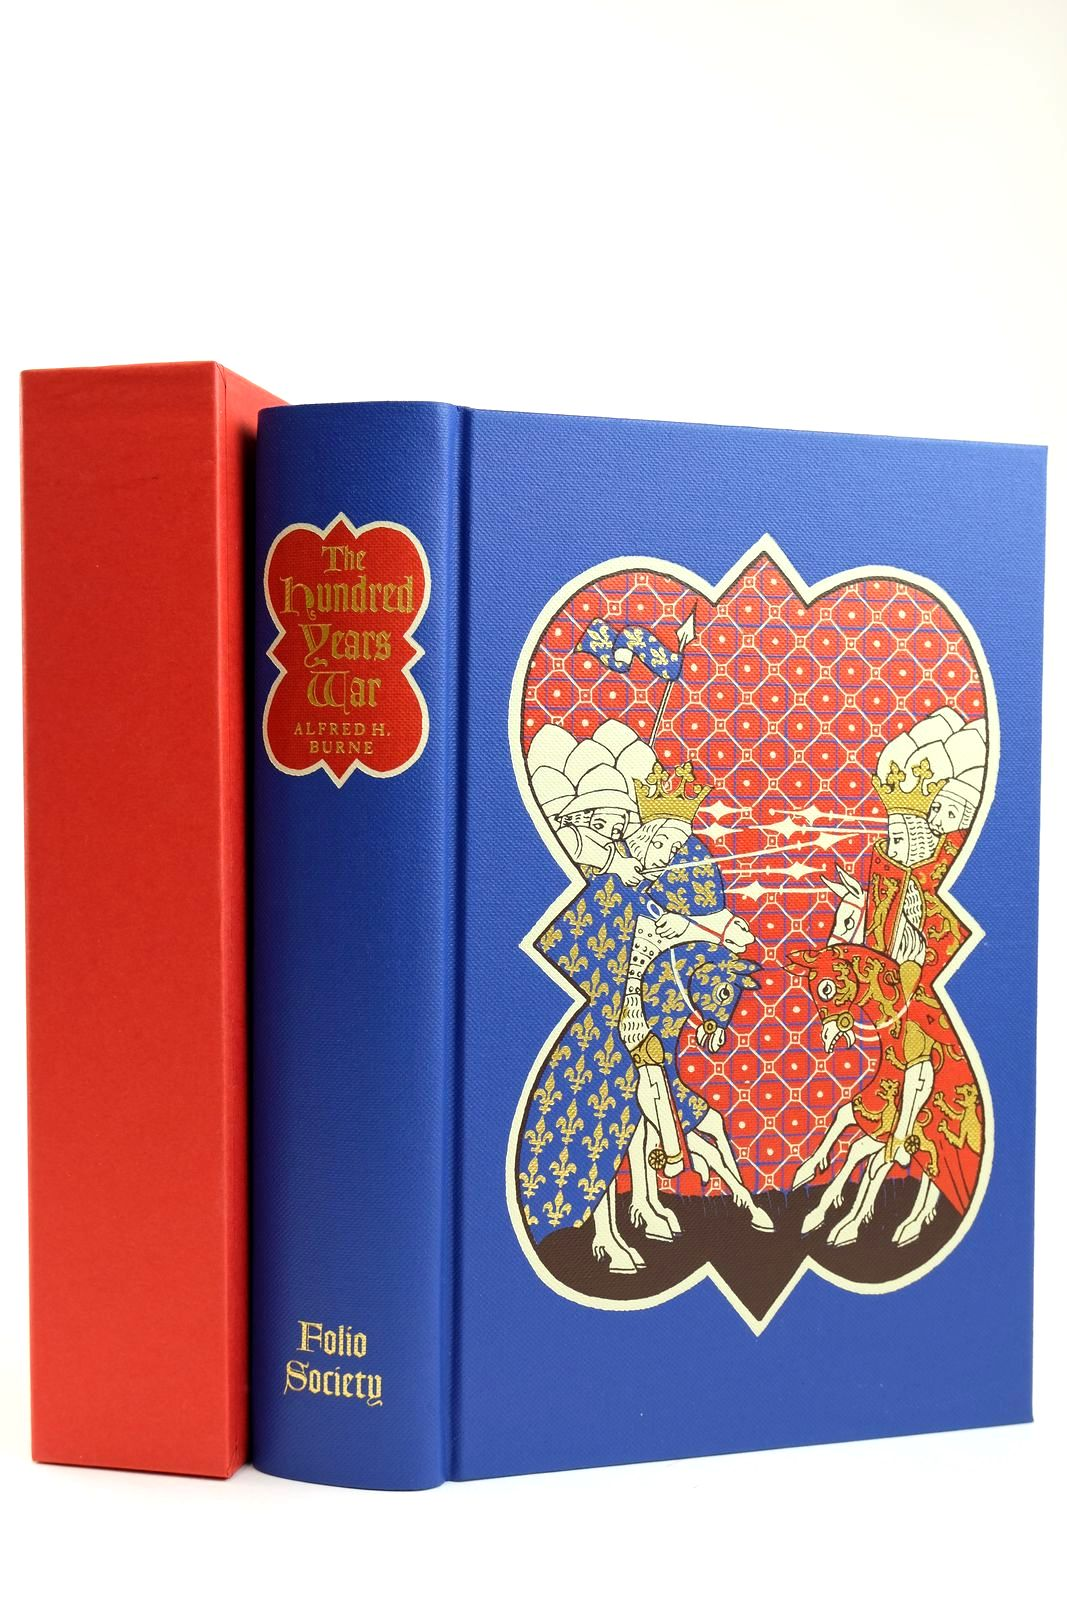 Photo of THE HUNDRED YEARS WAR written by Burne, Alfred H. Sumption, Jonathan published by Folio Society (STOCK CODE: 2132168)  for sale by Stella & Rose's Books